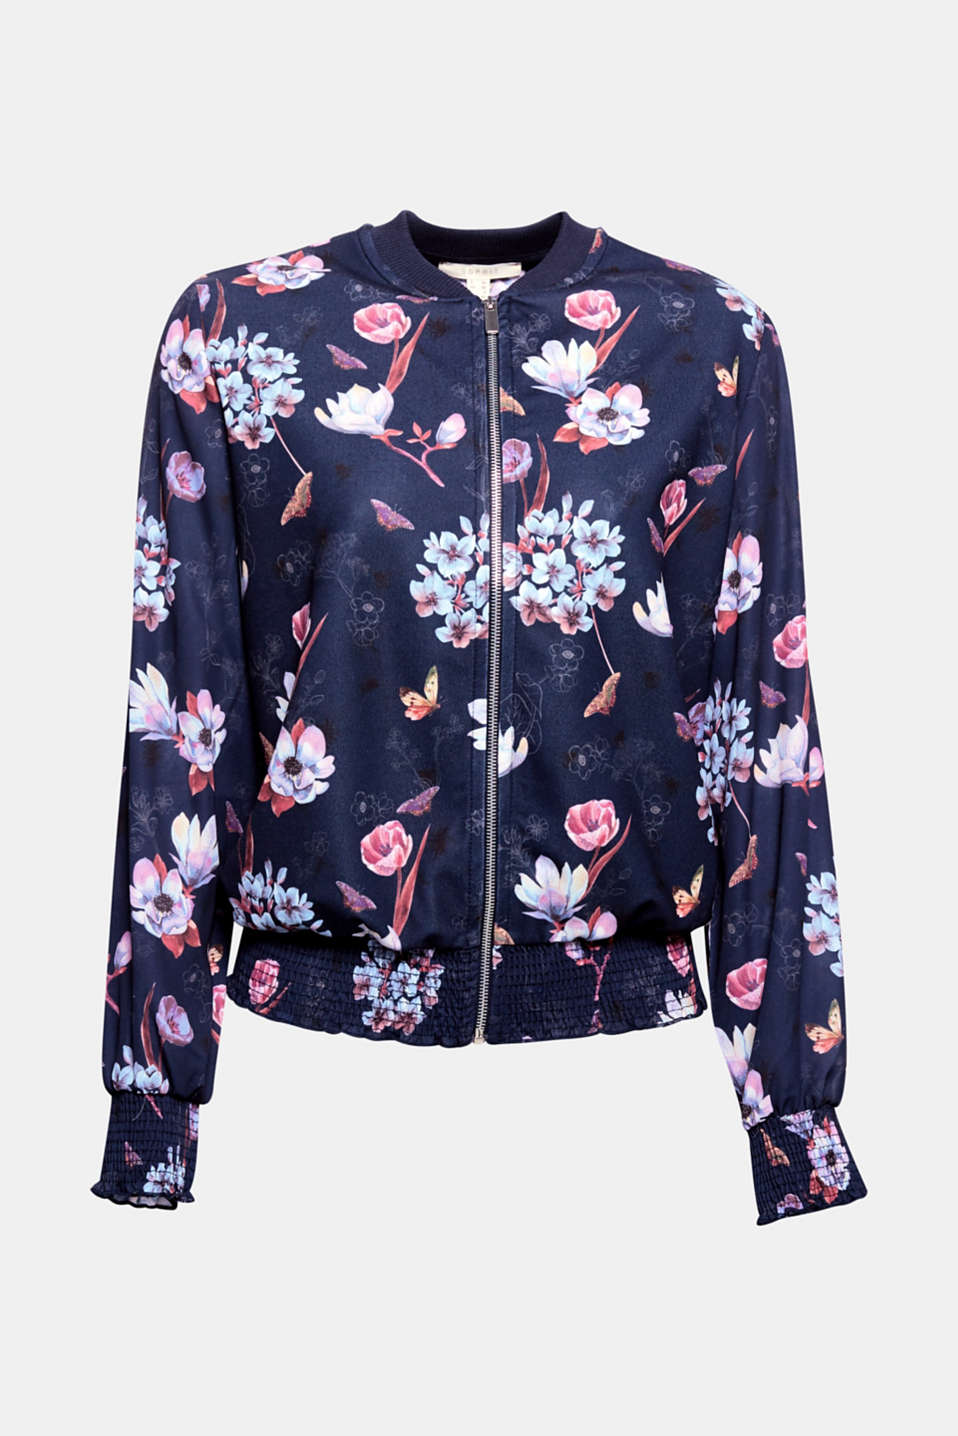 The colourful floral print gives this bomber jacket made of jersey and cloth its feminine, springtime flair!